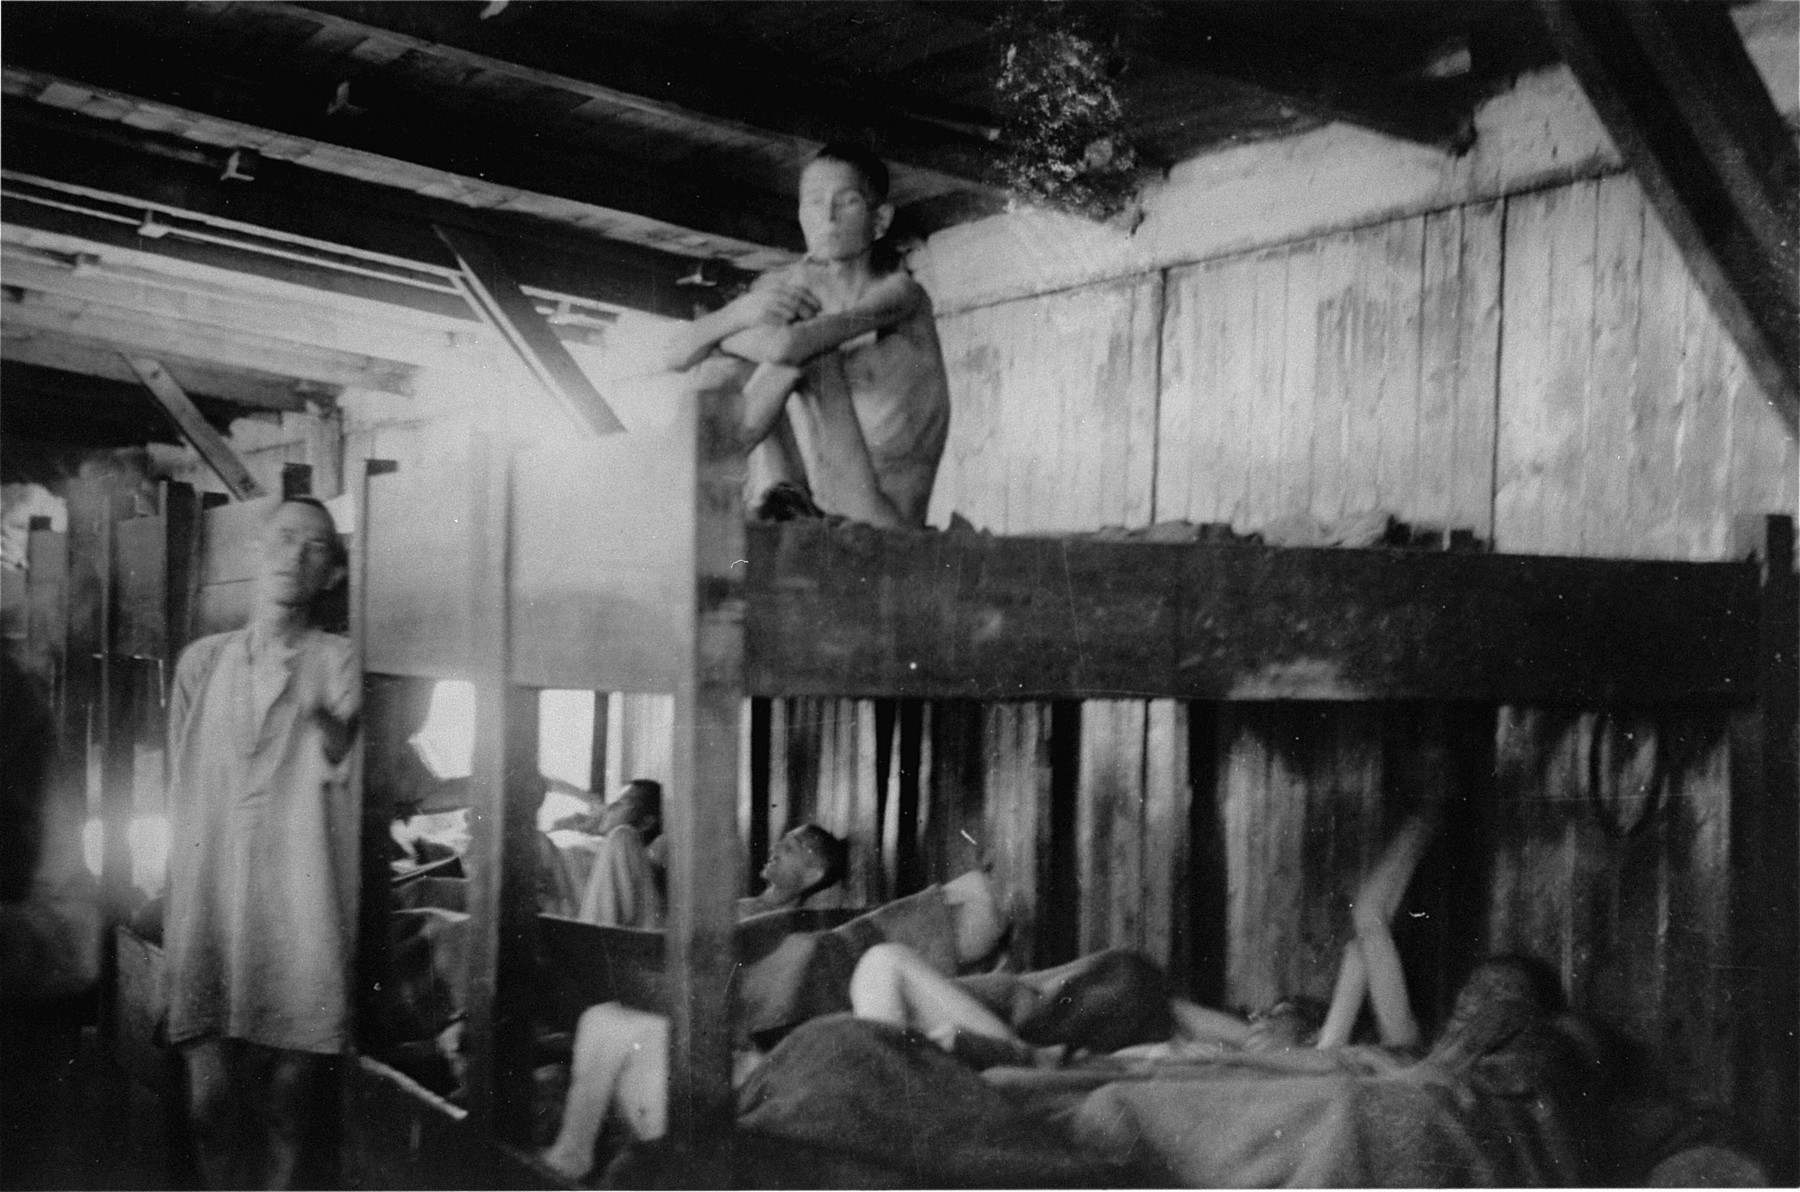 Emaciated survivors of Mauthausen in their barracks soon after liberation.  Sitting on the top bunk is Lysakow Michael (b. June 4, 1908).  He died on June 25, 1945 in the Mauthausen Evacuation Hospital from bronchitis.